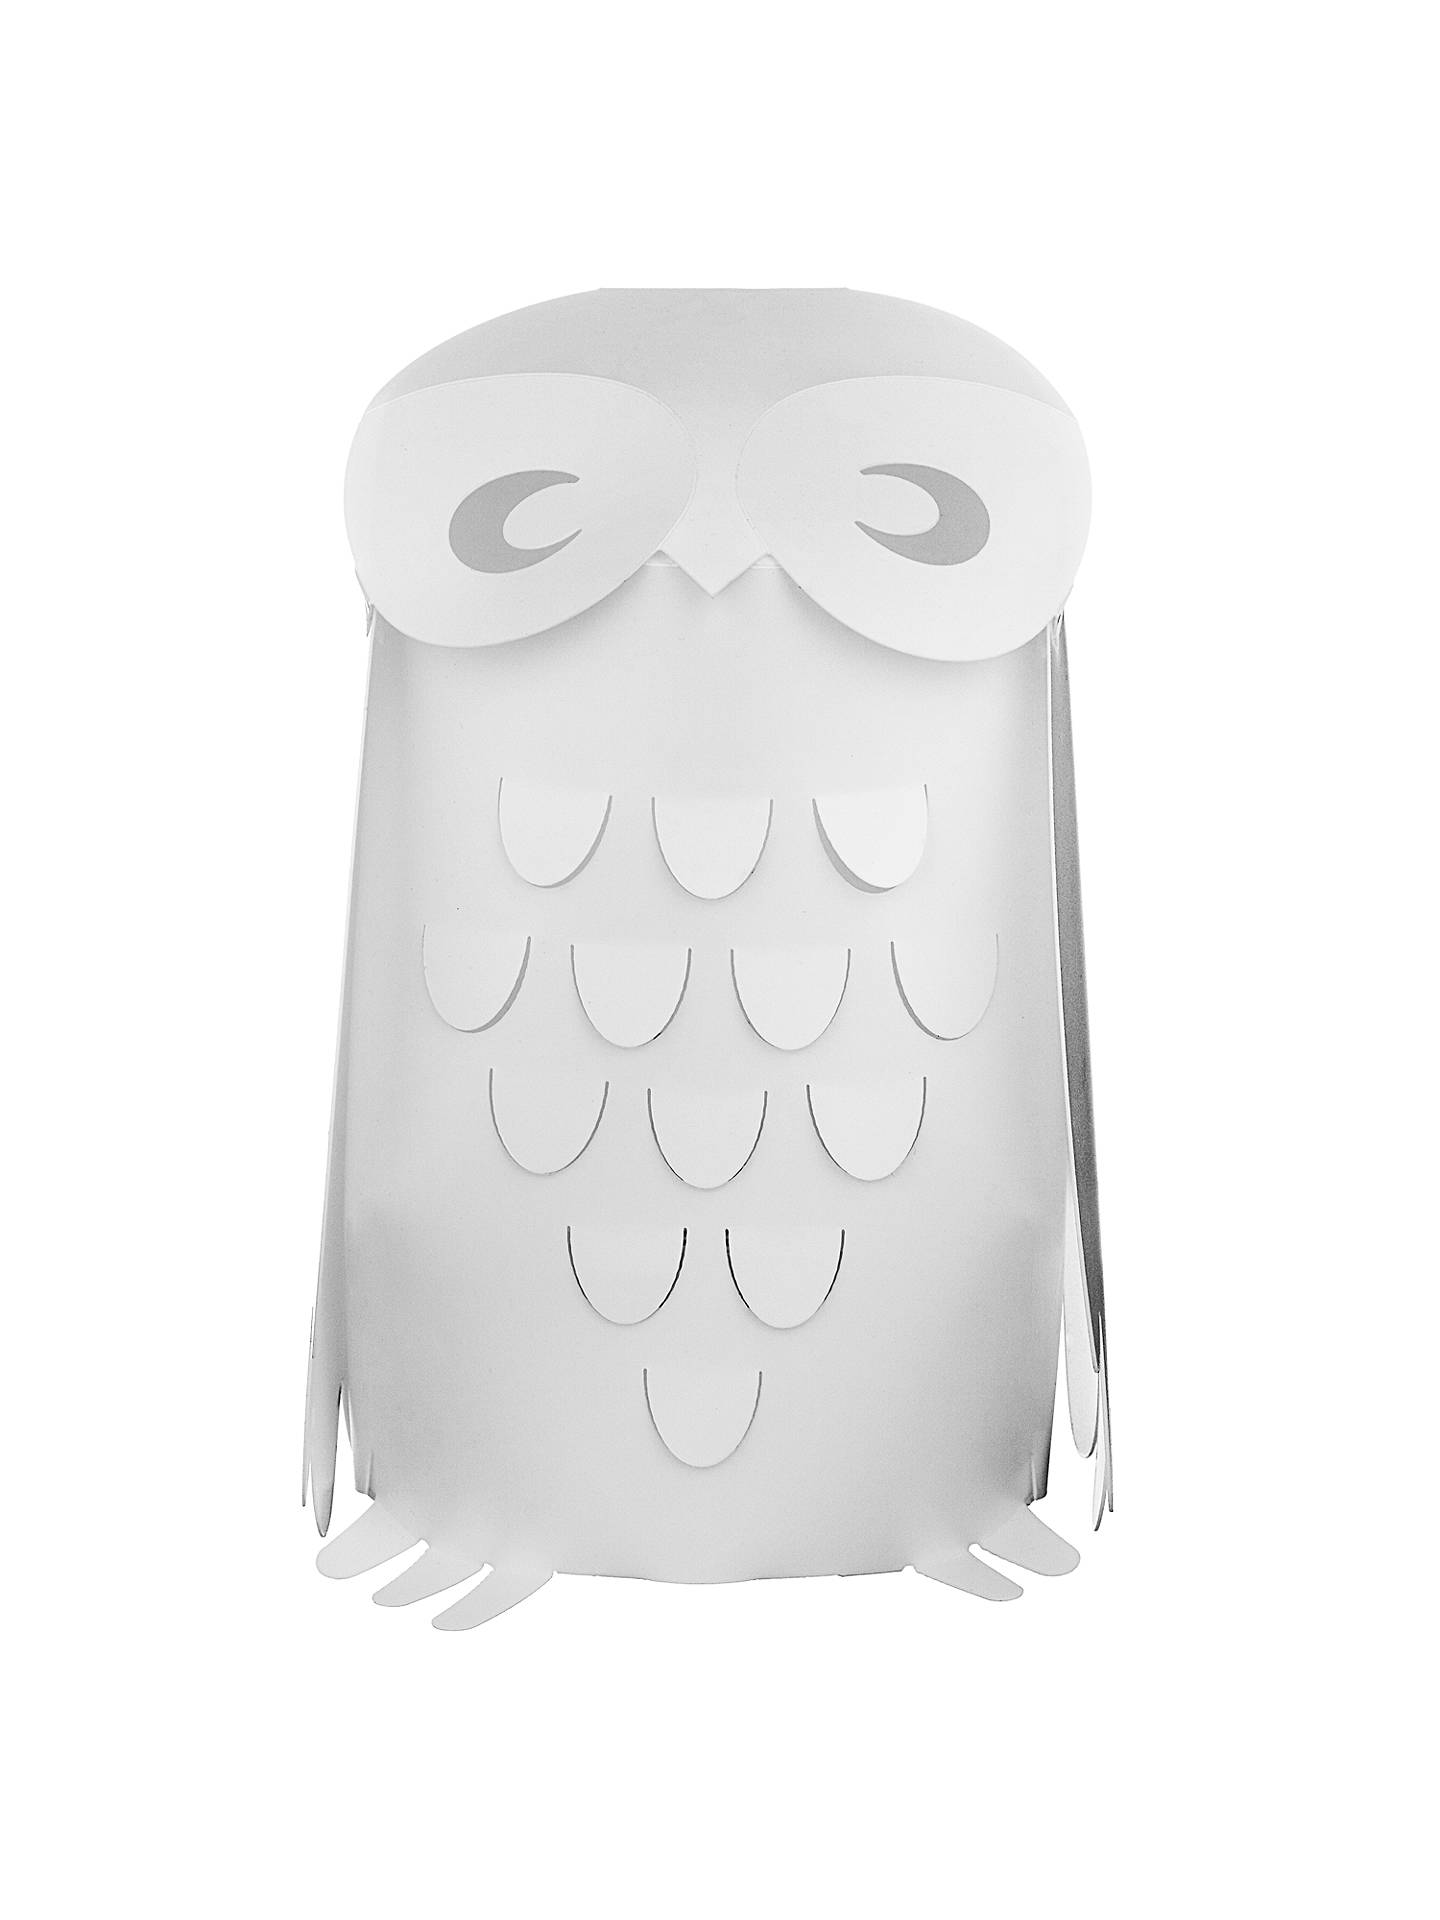 Buylittle home at John Lewis Animal Fun Owl Children's Table Lamp Online at johnlewis.com